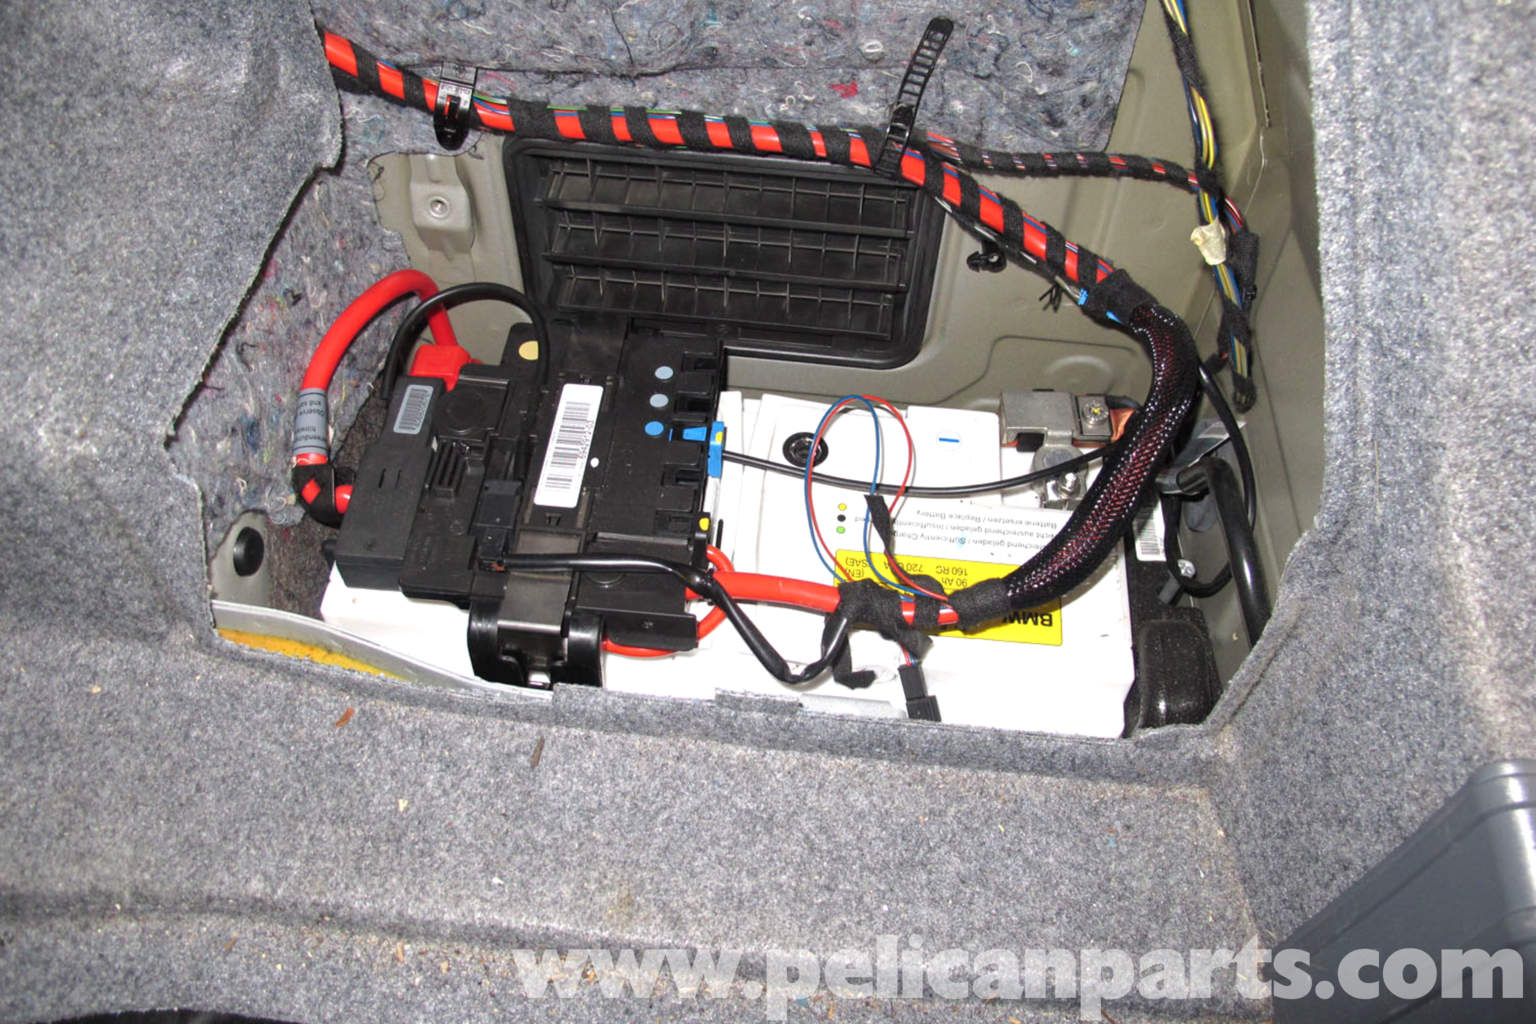 pic01 e90 m3 fuse box e39 fuse box wiring diagram ~ odicis e90 m3 fuse box location at webbmarketing.co